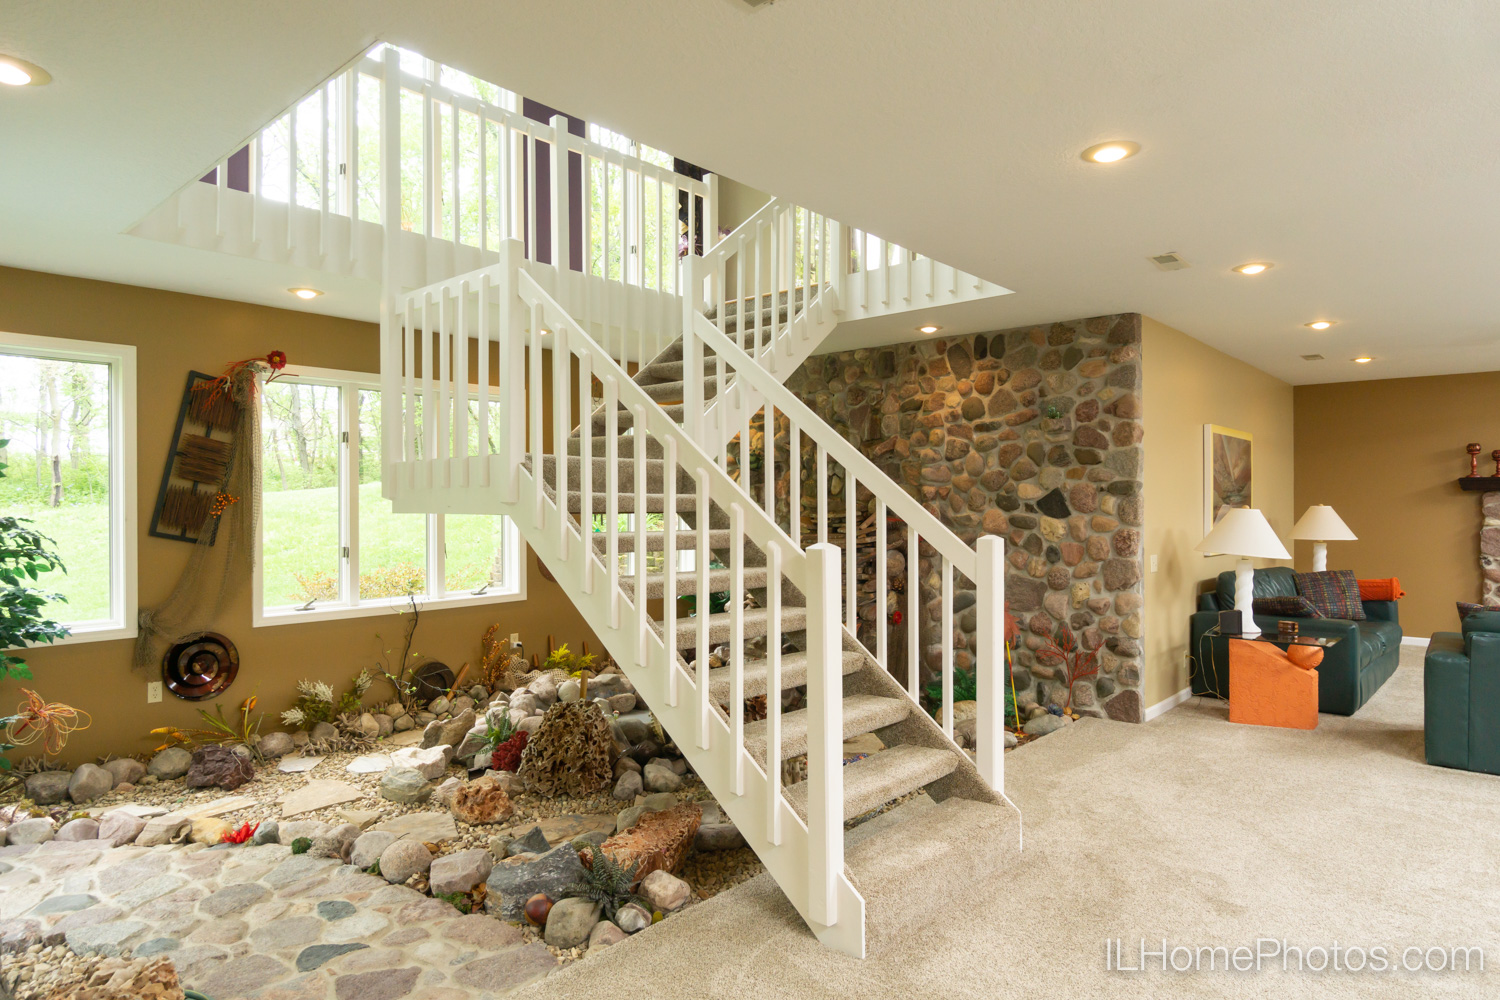 Interior atrium photograph for real estate in Mt Zion, IL :: Illinois Home Photography by Michael Gowin, Lincoln, IL